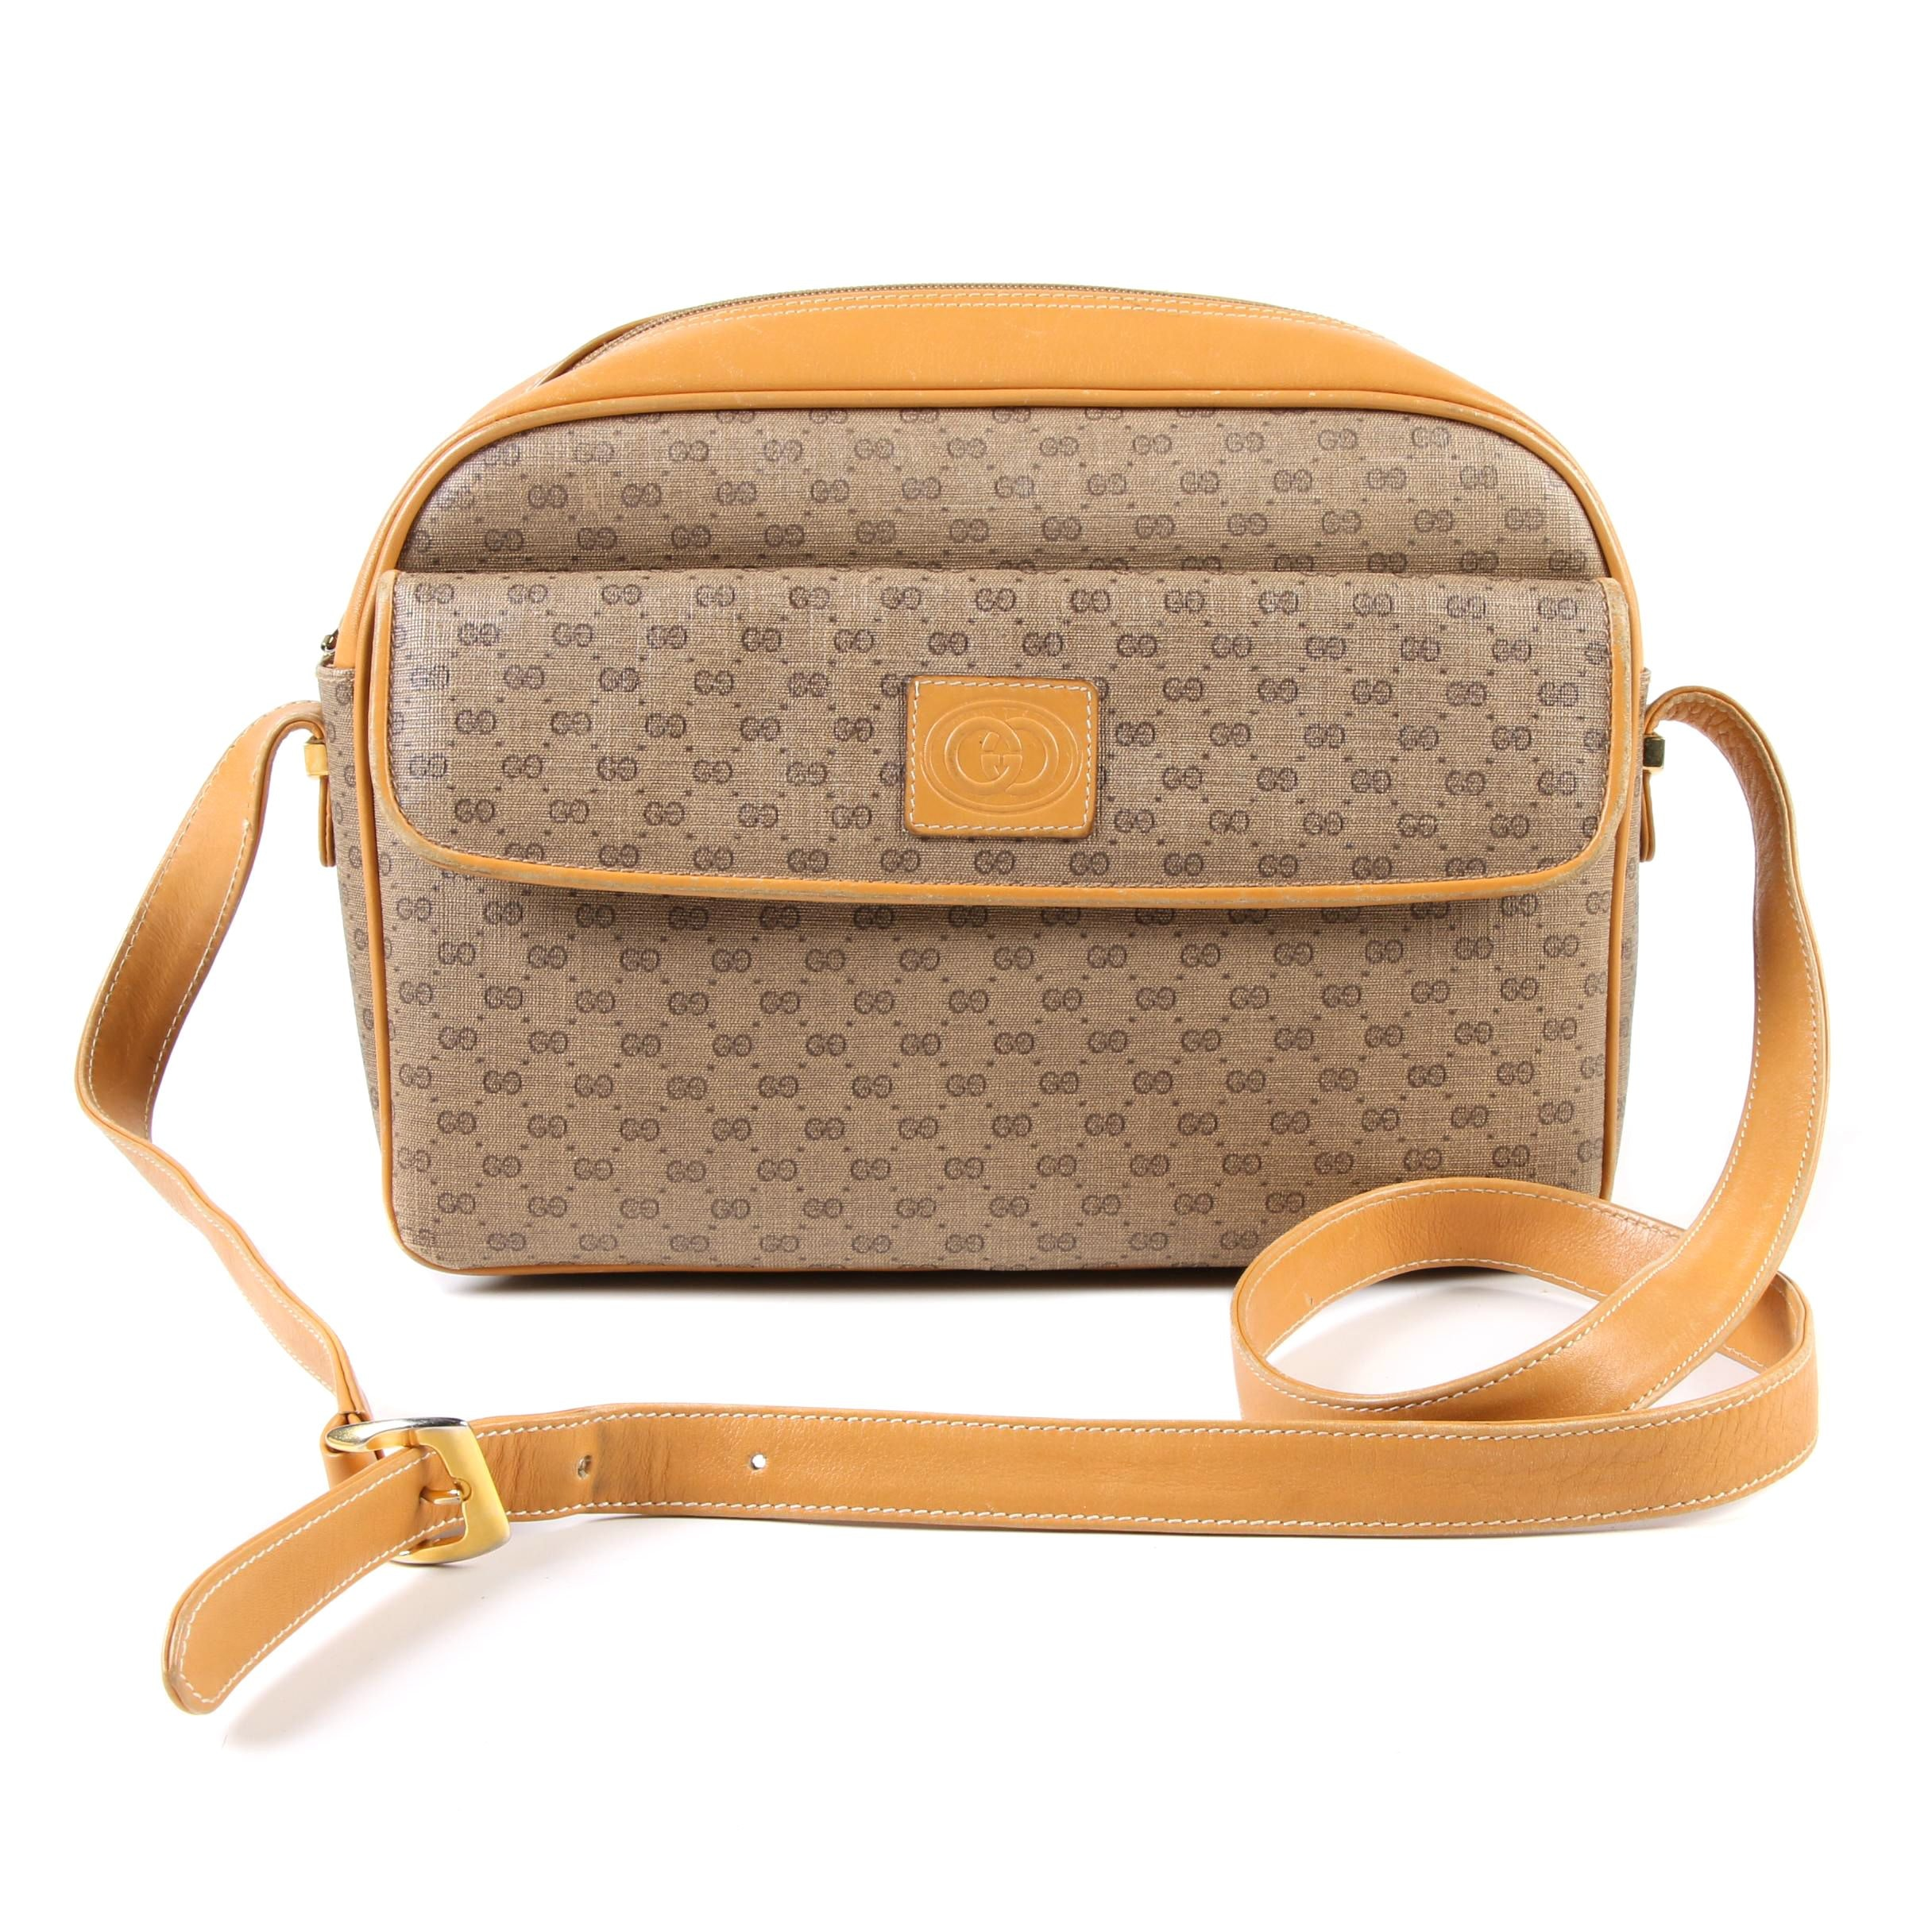 Gucci Micro GG Canvas and Tan Leather Crossbody Shoulder Bag, Vintage